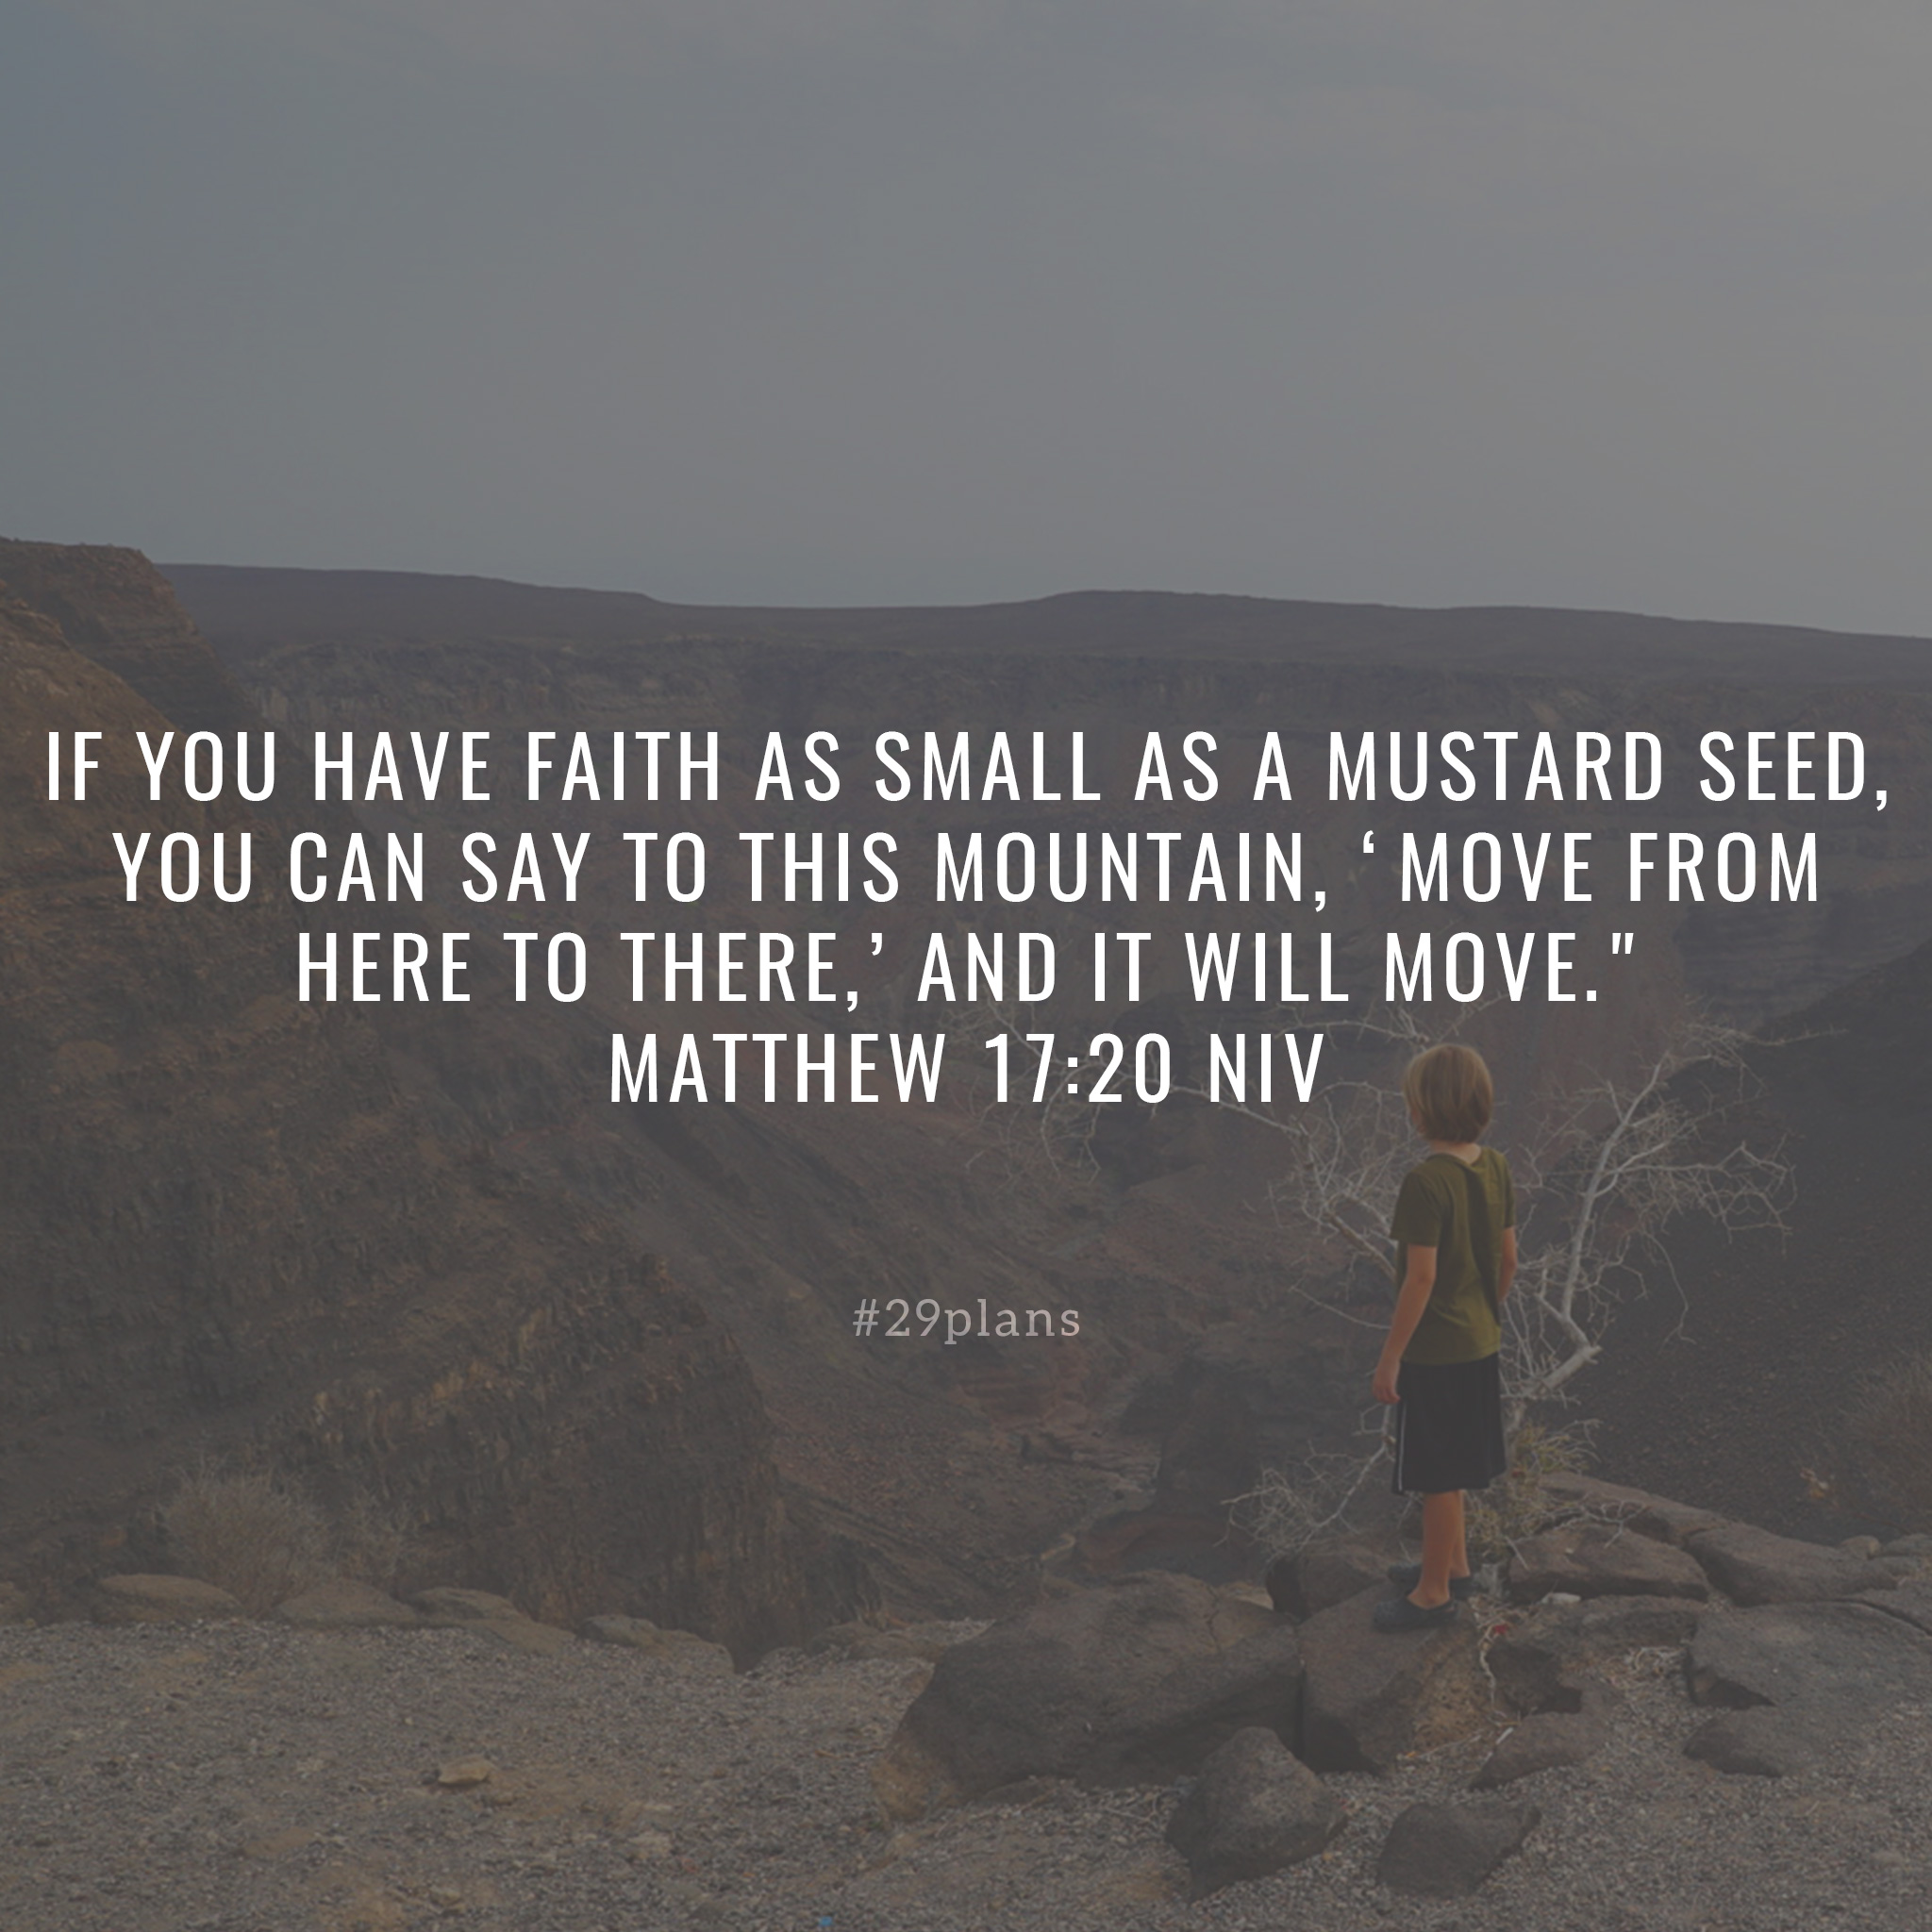 Today's Guide — 01.29.18 — Abraham Tested and Faith to Move Mountains